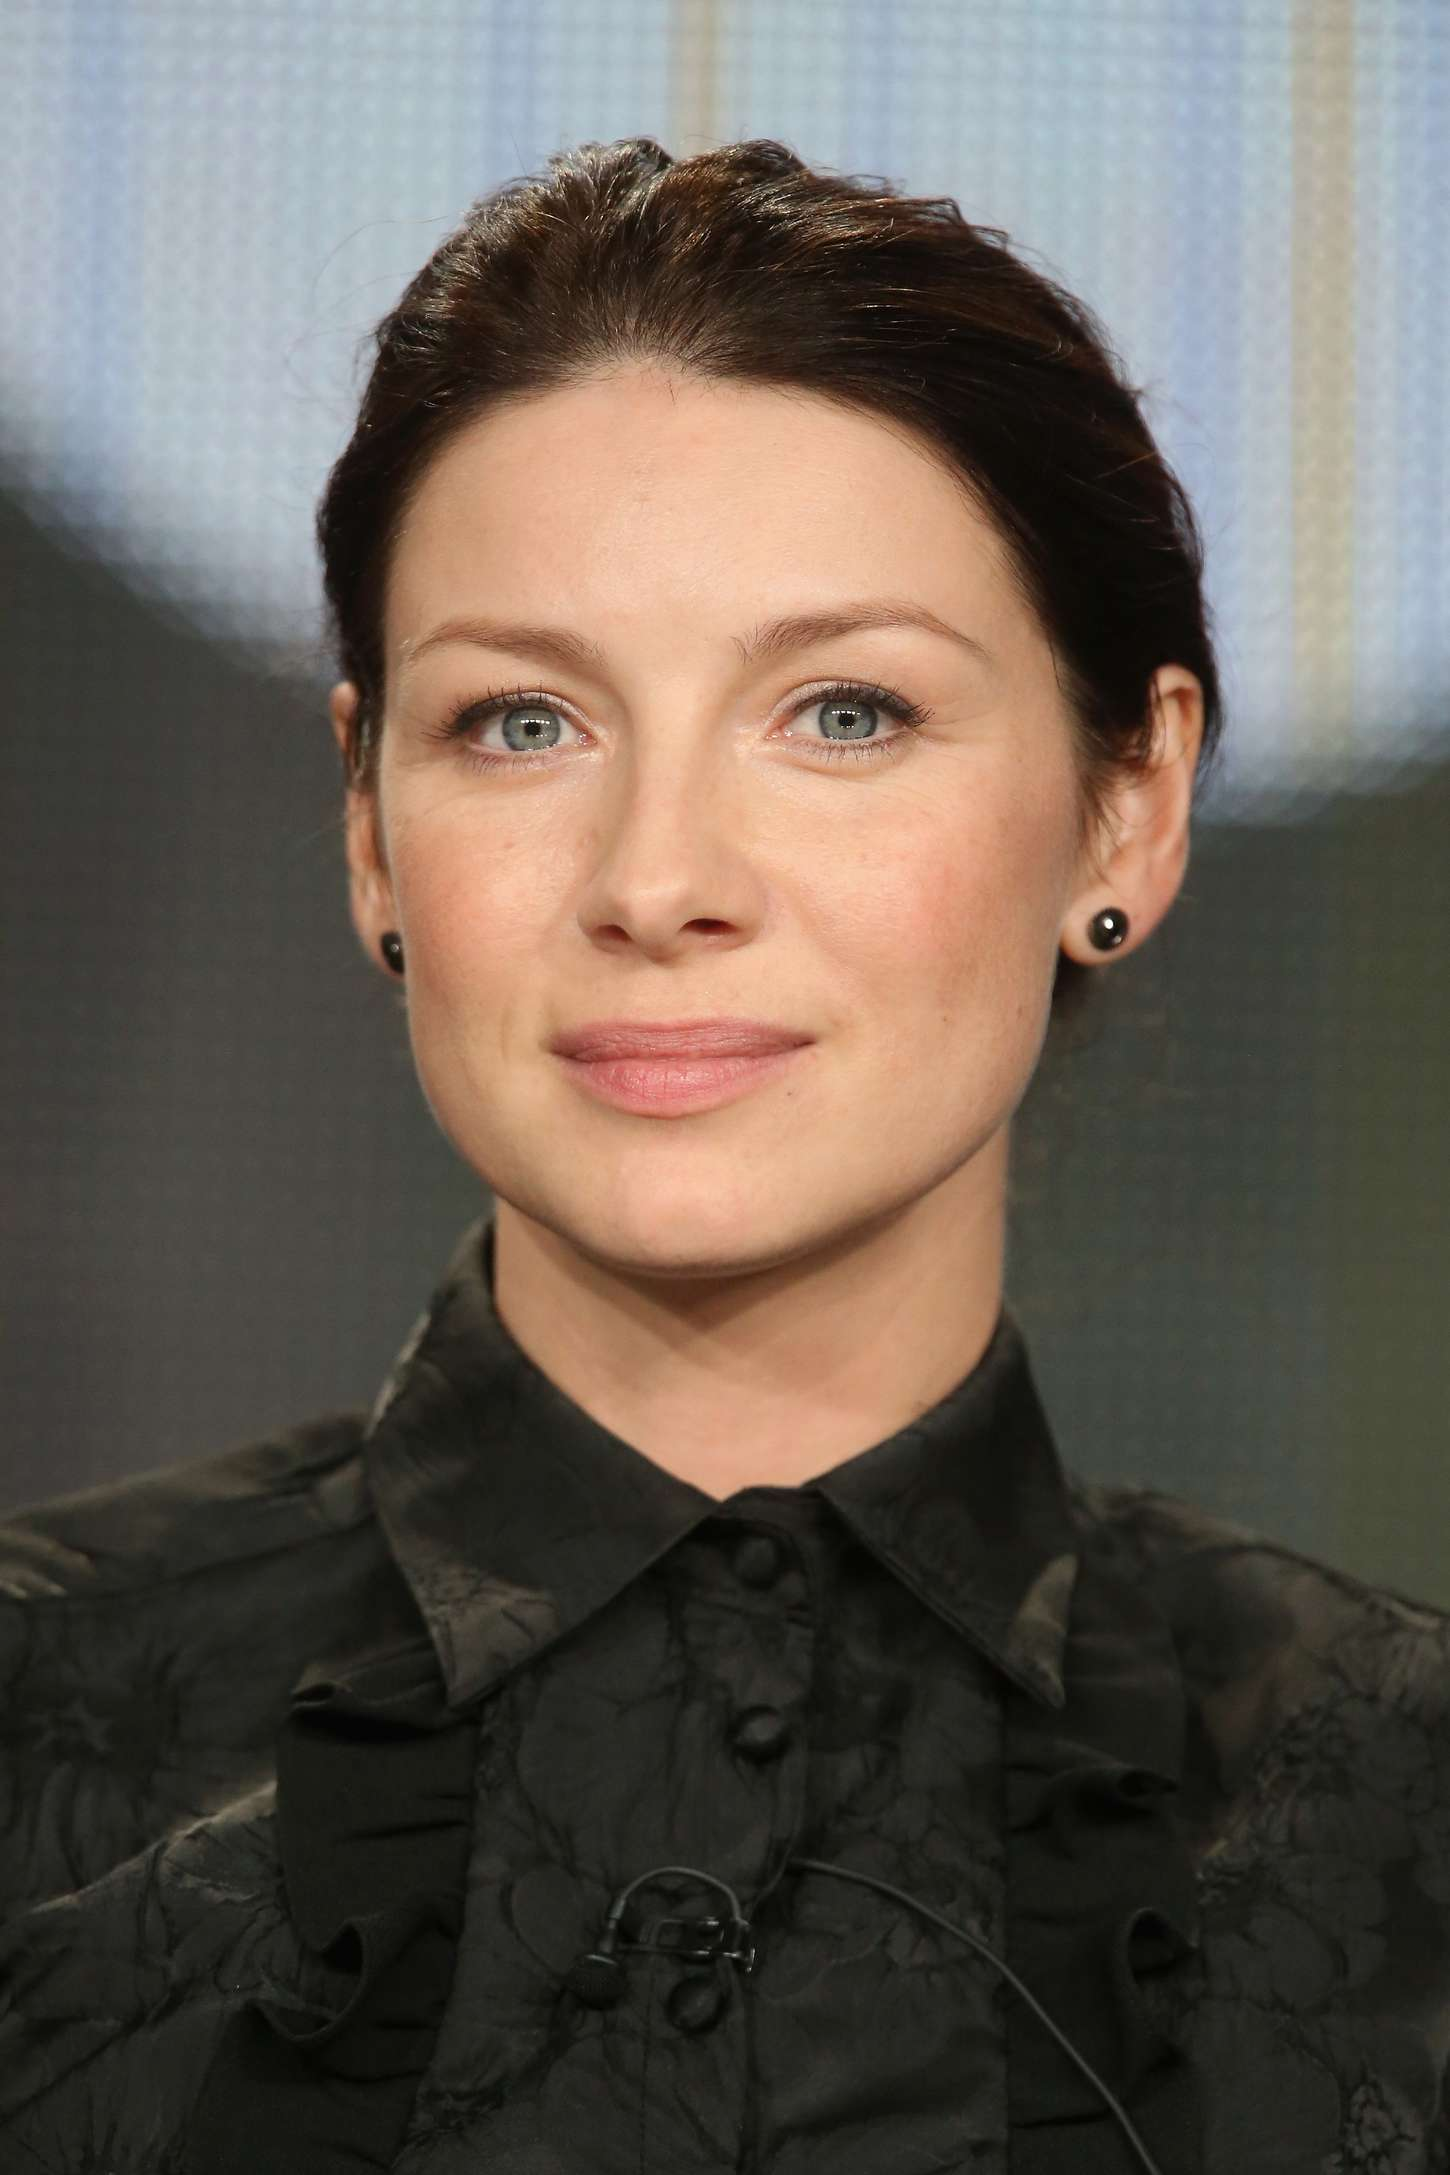 caitriona balfe datescaitriona balfe and sam heughan relationship, caitriona balfe height, caitriona balfe vk, caitriona balfe gif, caitriona balfe weight and height, caitriona balfe photoshoot, caitriona balfe outlander, caitriona balfe married, caitriona balfe instagram, caitriona balfe facebook, caitriona balfe dates, caitriona balfe film, caitriona balfe paparazzi, caitriona balfe movies, caitriona balfe fansite, caitriona balfe and tony mcgill, caitriona balfe in golden globes 2017, caitriona balfe laughing, caitriona balfe insta, caitriona balfe fashion spot